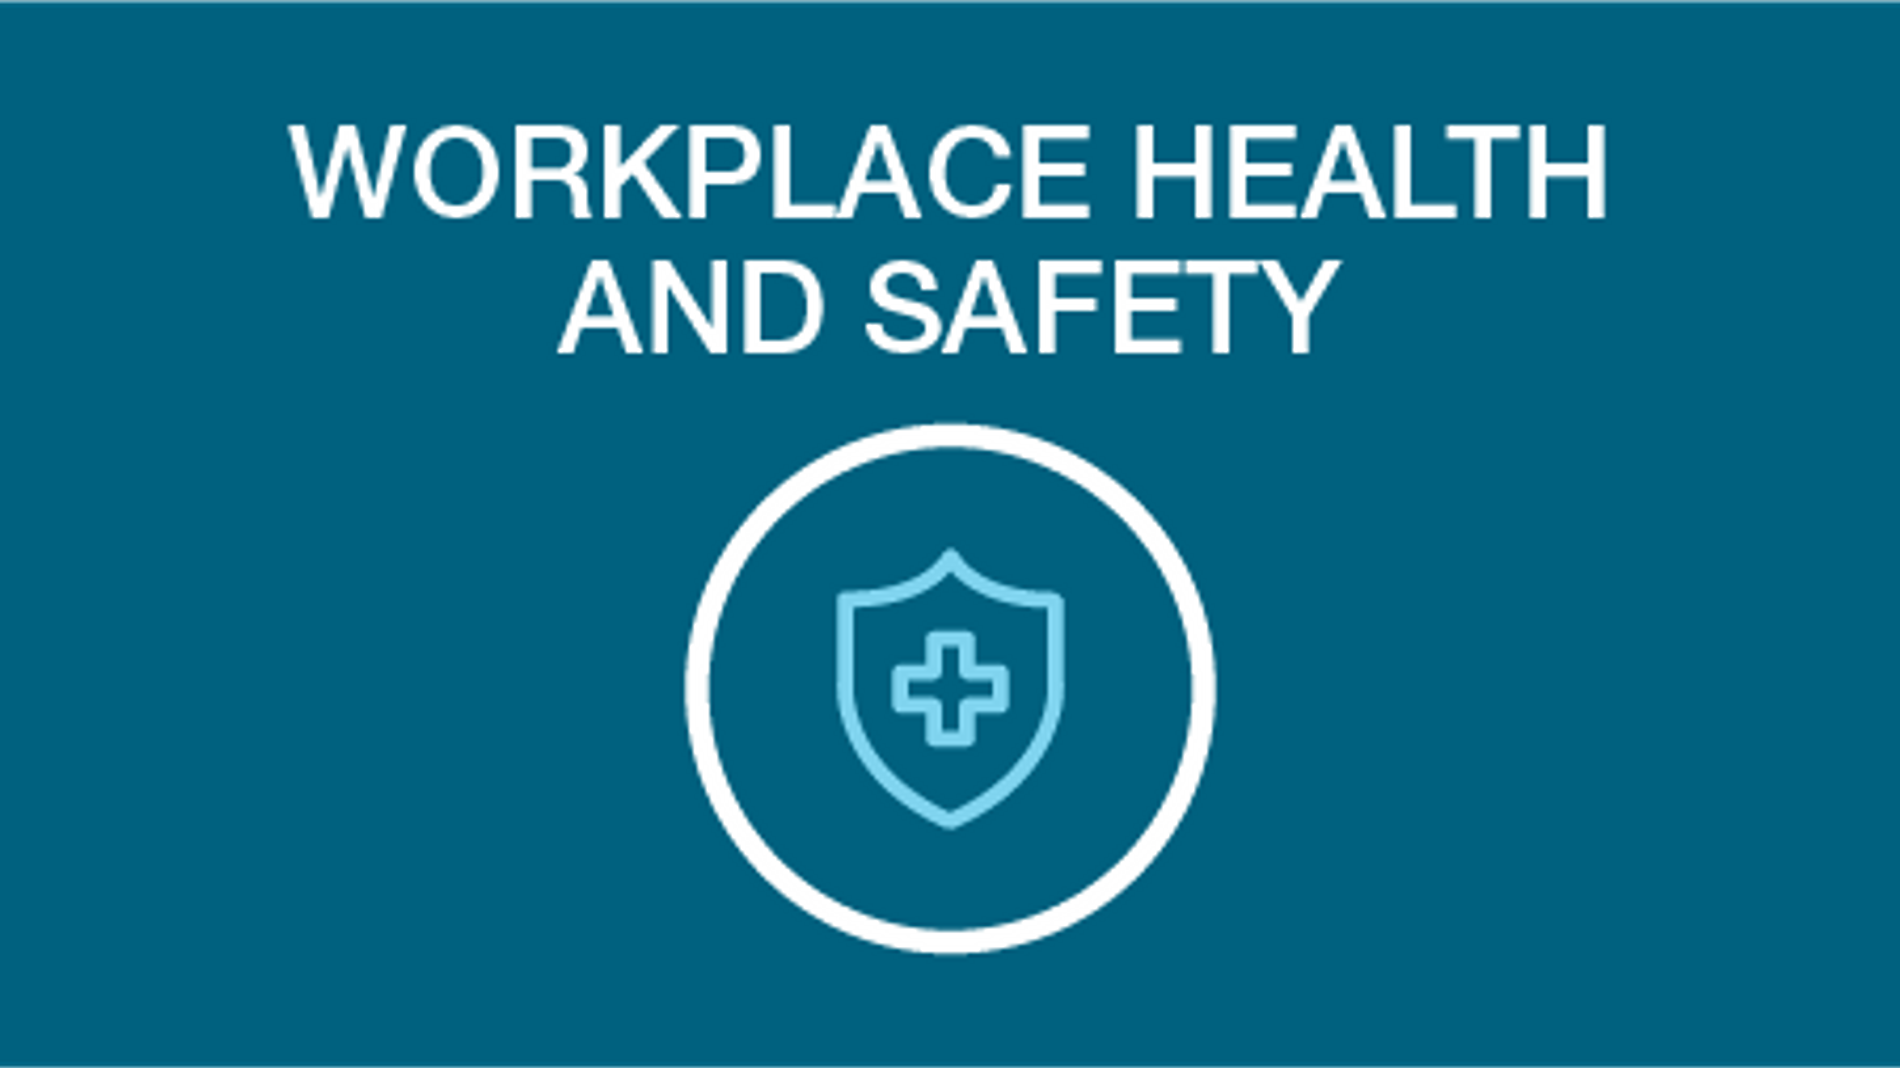 Workplace Health icon